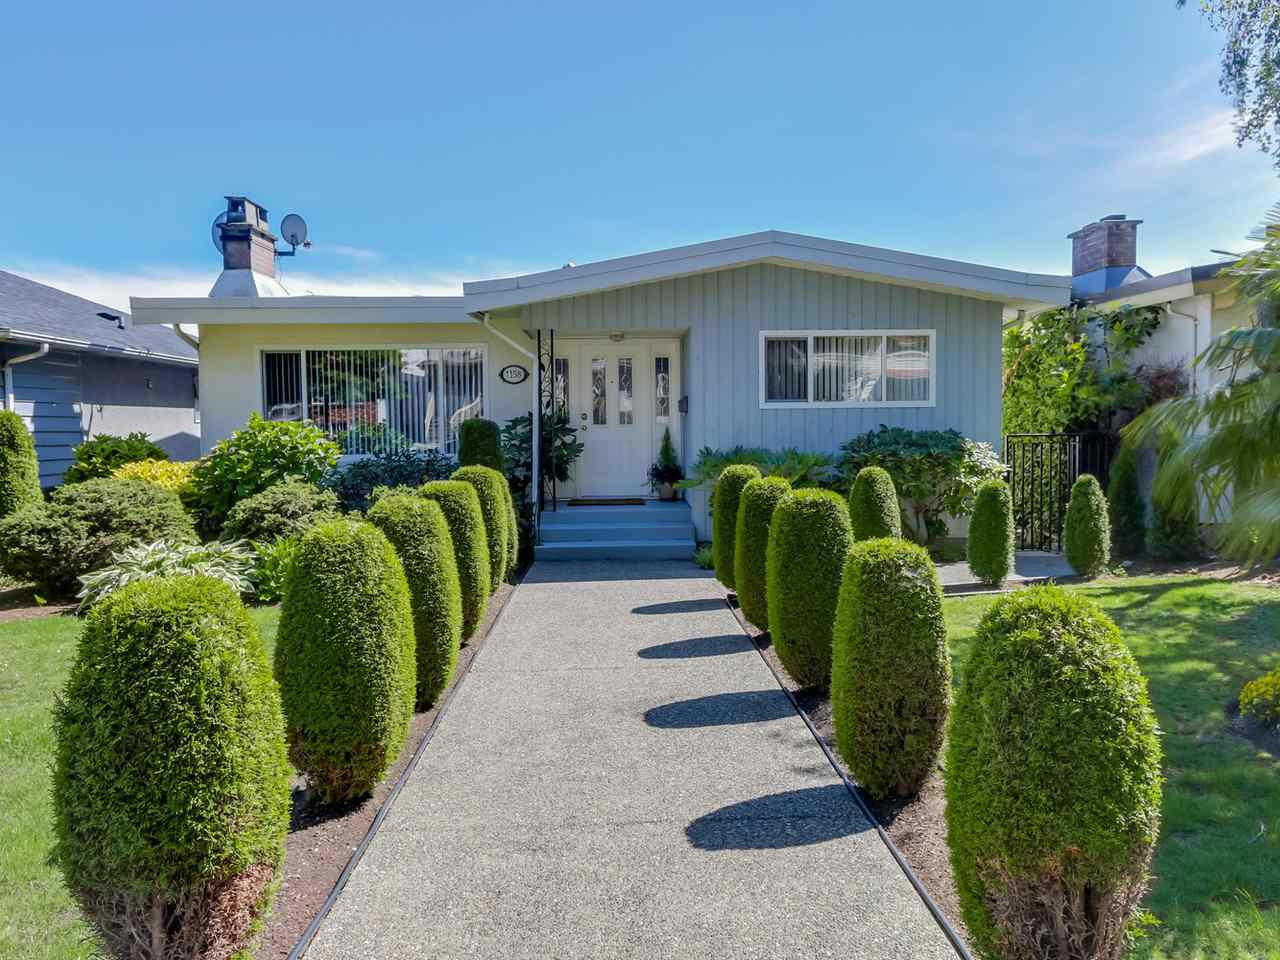 Main Photo: 1158 E 62ND AVENUE in Vancouver: South Vancouver House for sale (Vancouver East)  : MLS® # R2082544